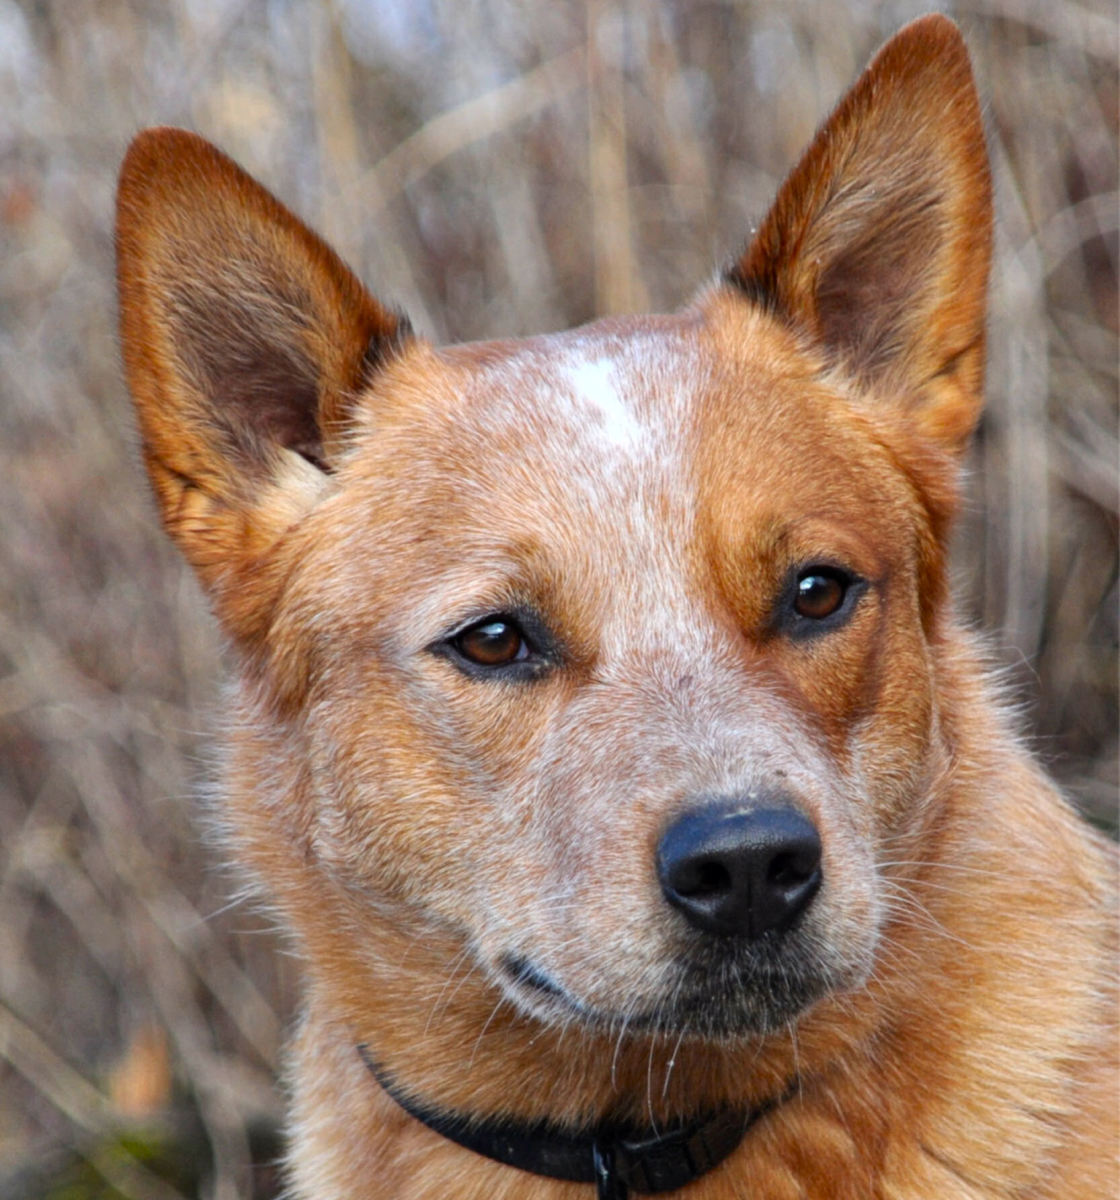 An Australian Cattle Dog's head.